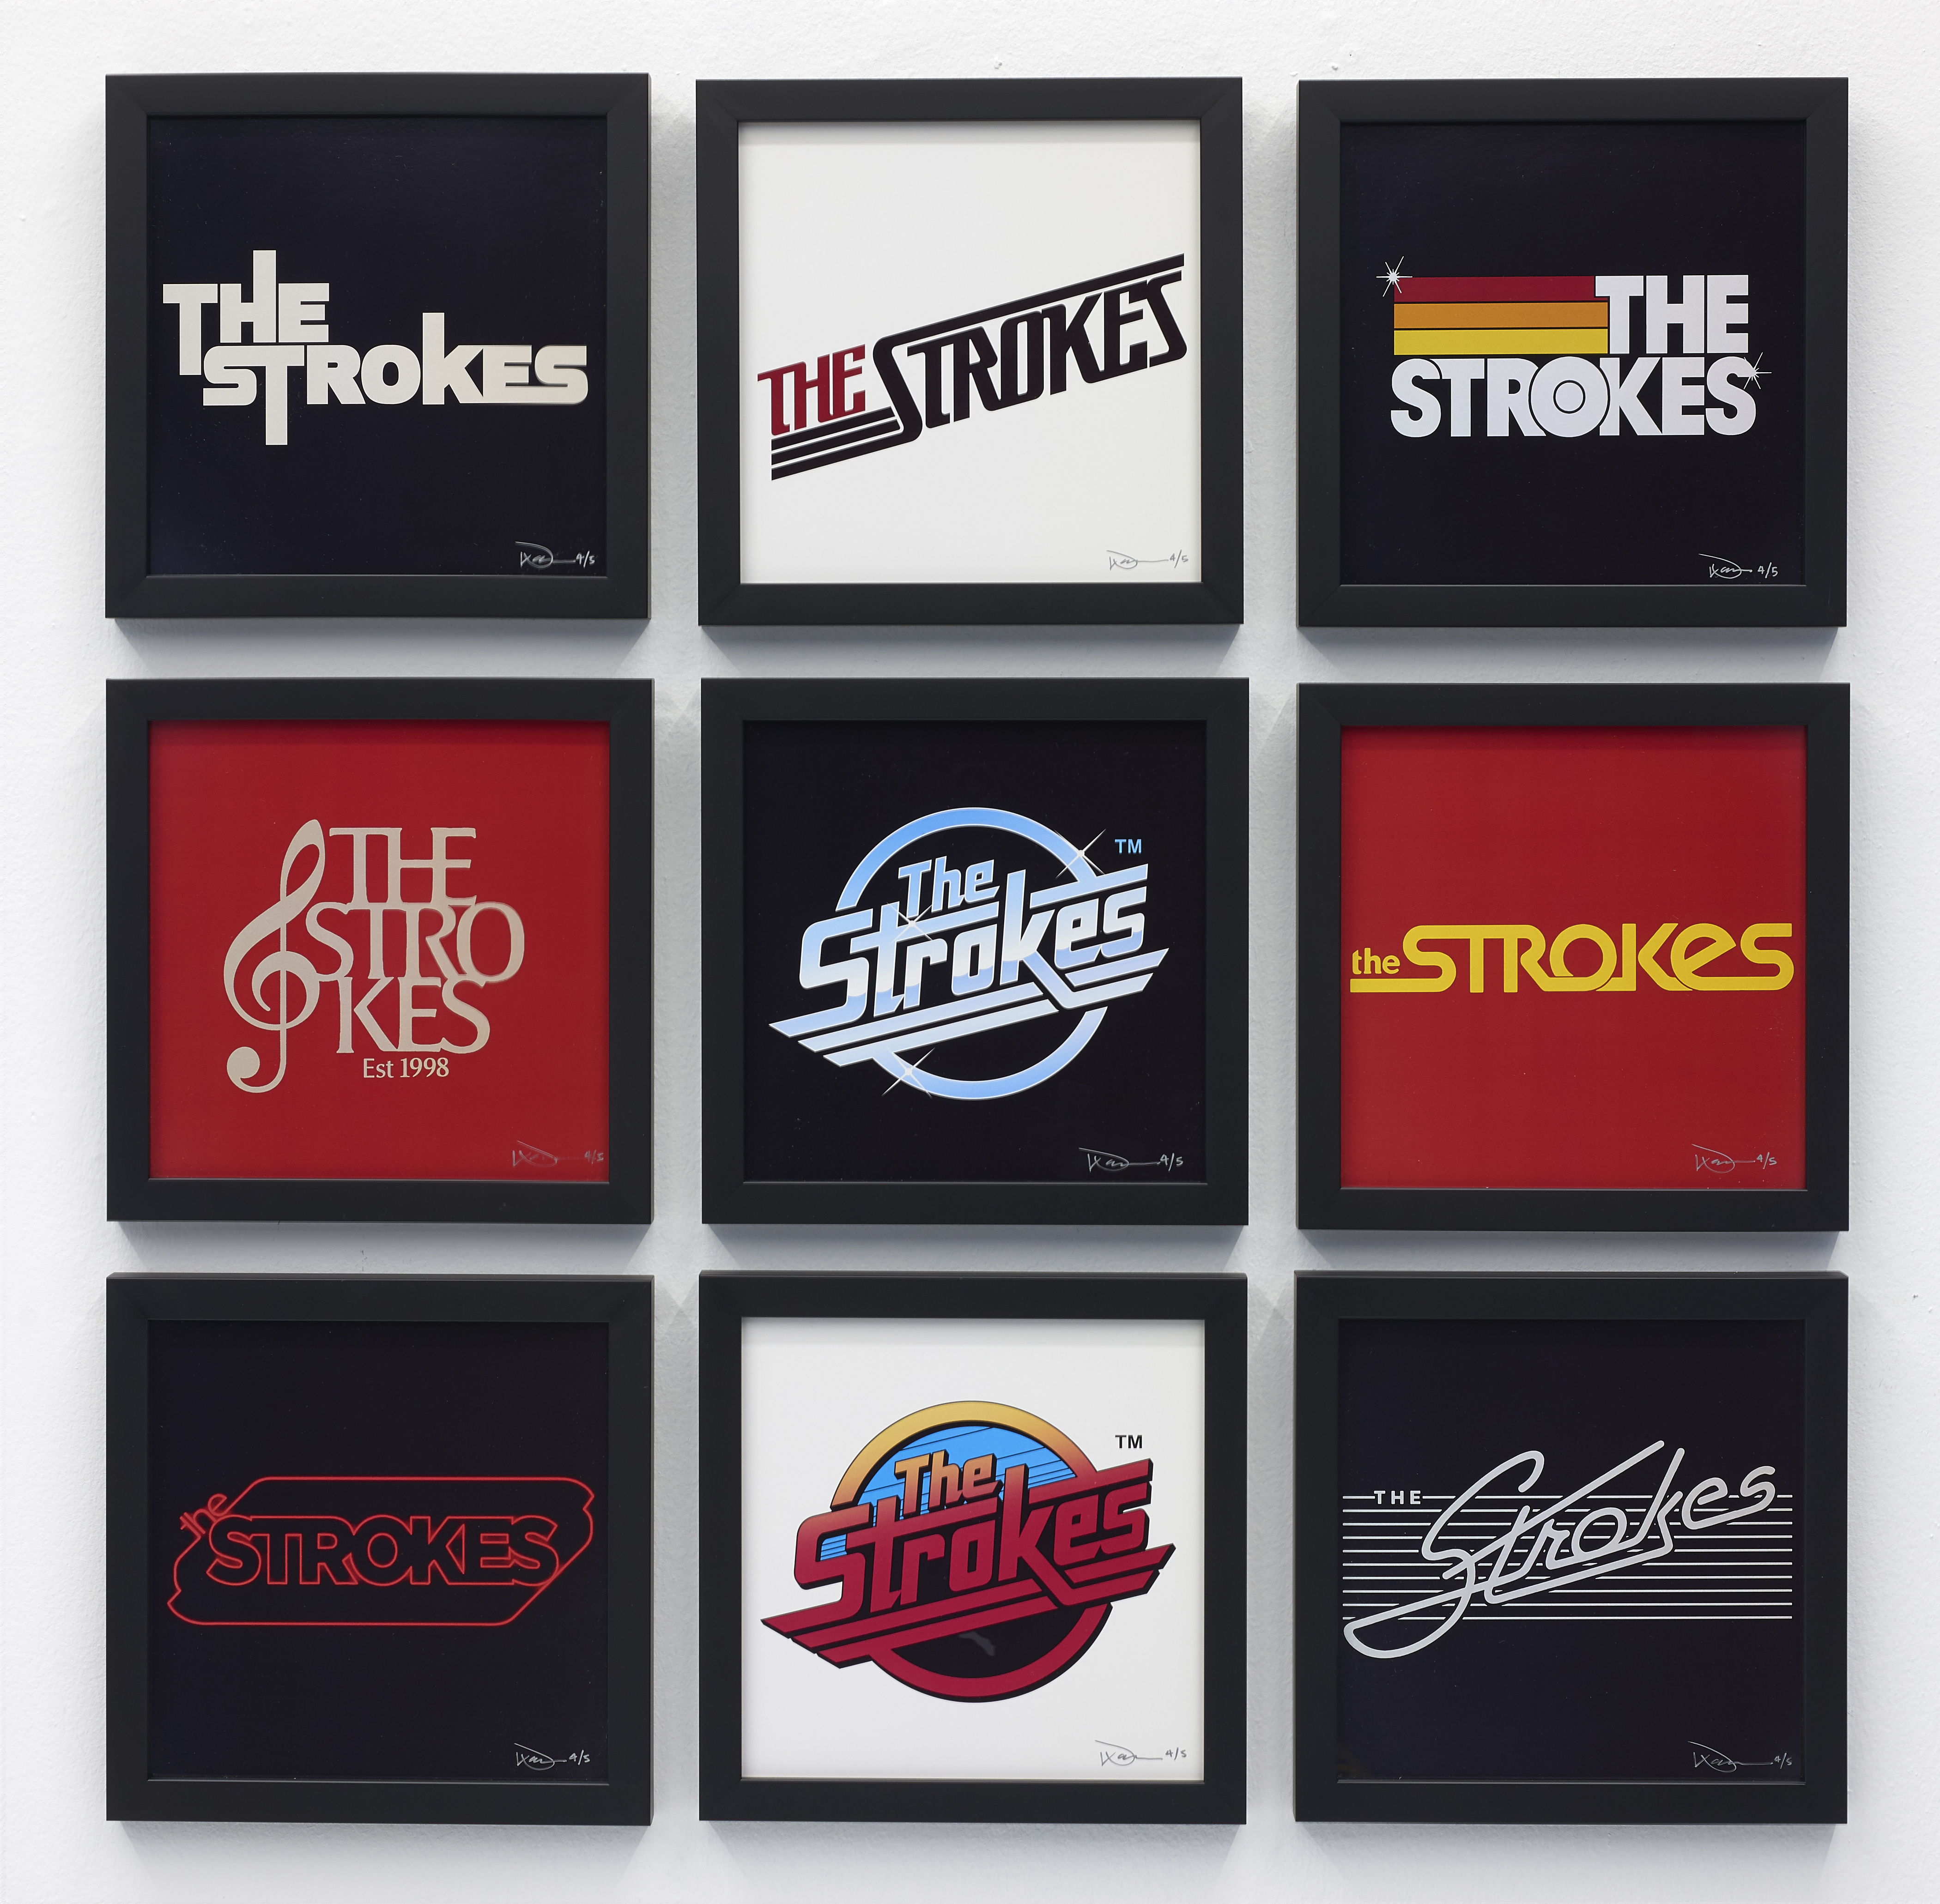 Warren-Fu-The-Strokes-logos-2019